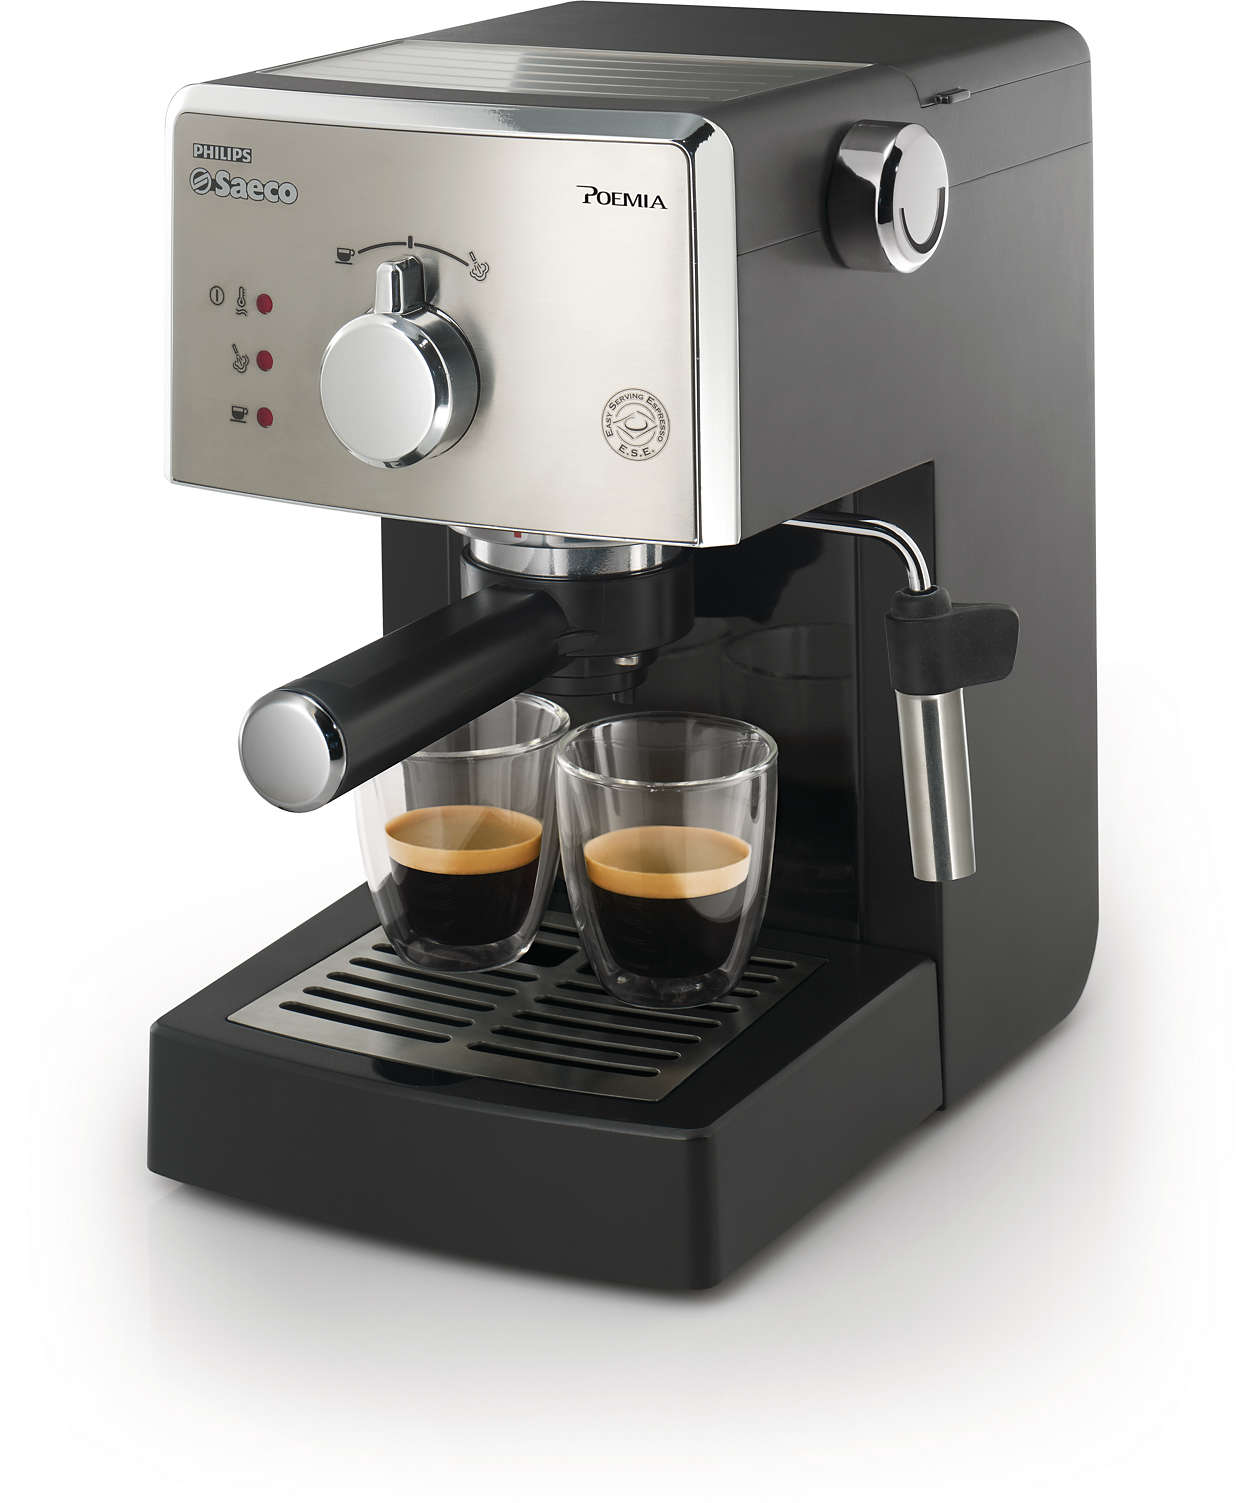 ... Saeco Coffee Machines Repairs ~ Poemia manual espresso machine hd saeco  ...